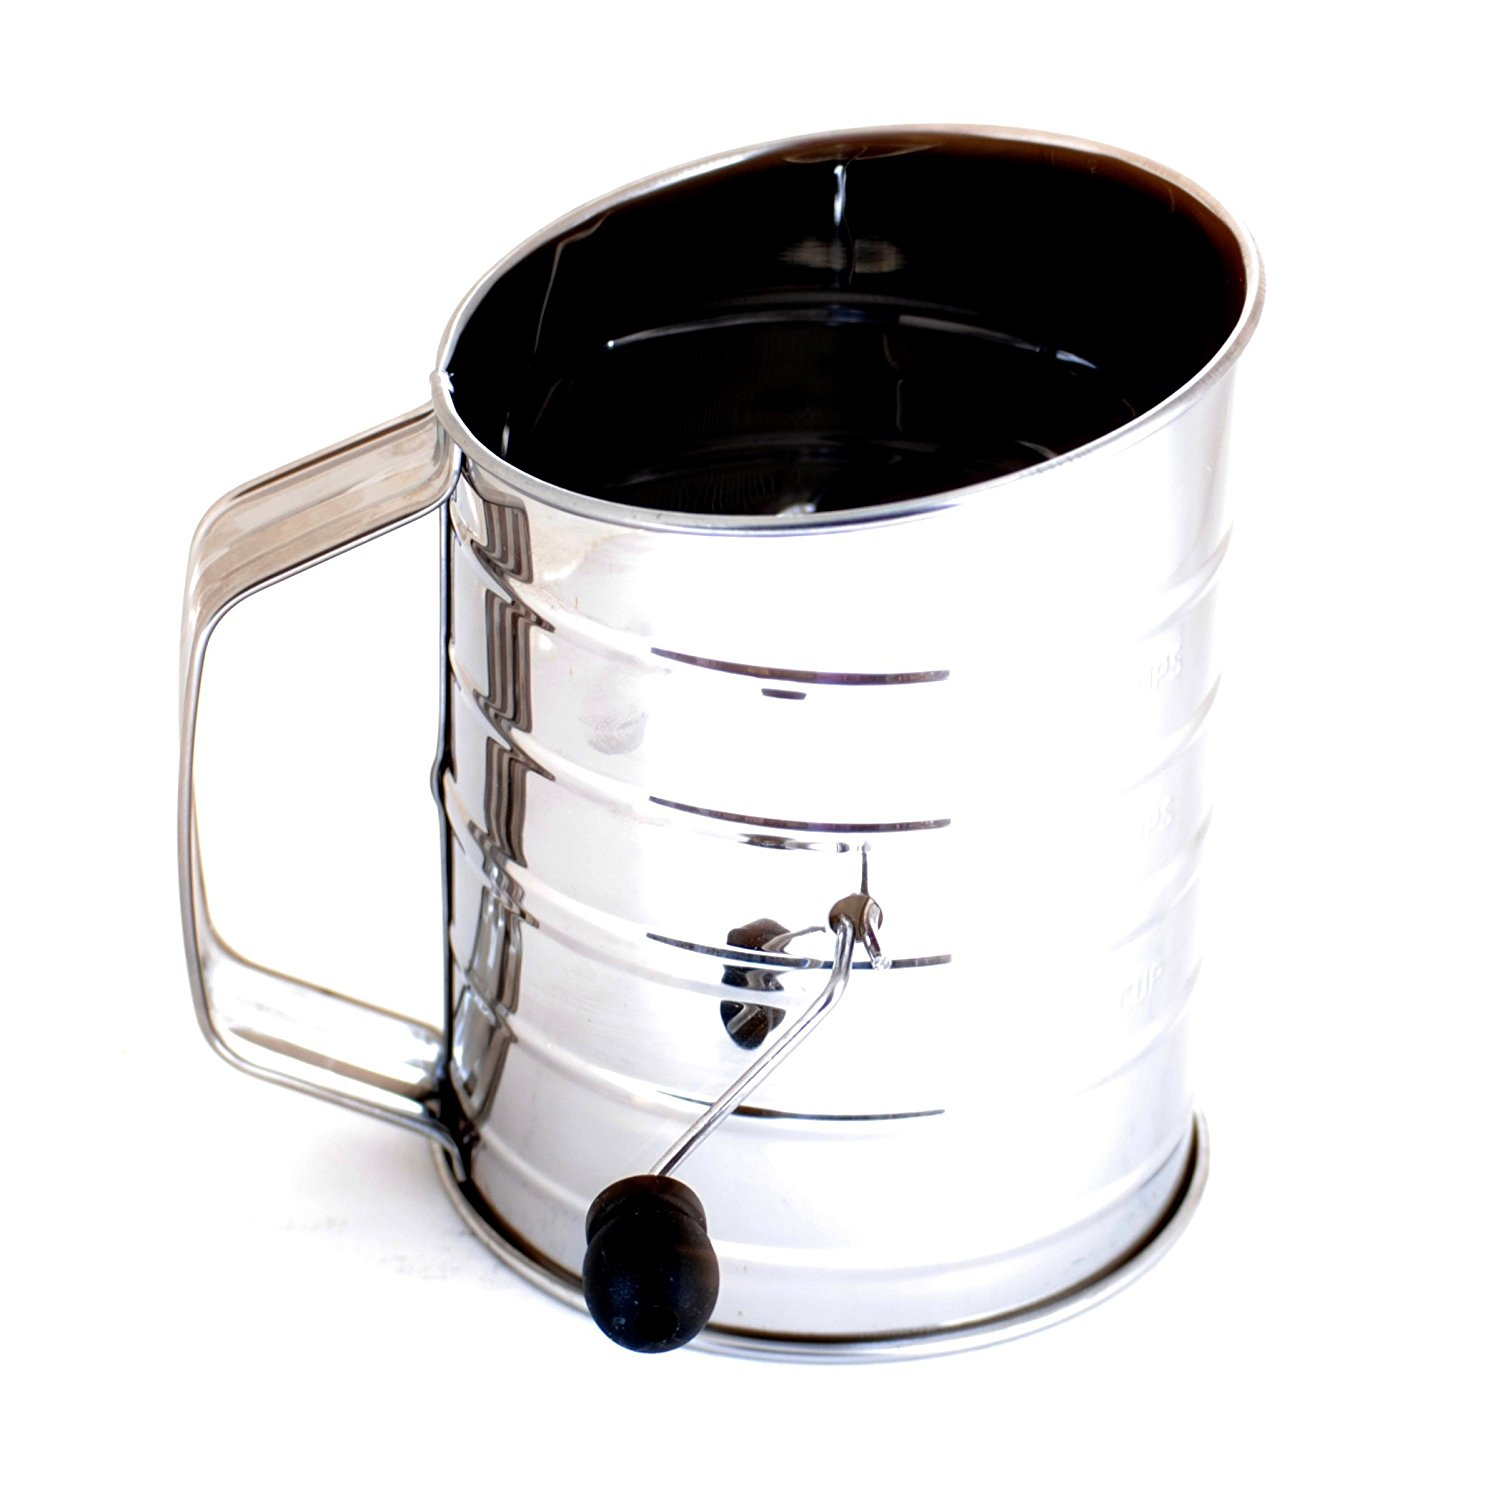 NORPRO 3 CUP TIN SIFTER